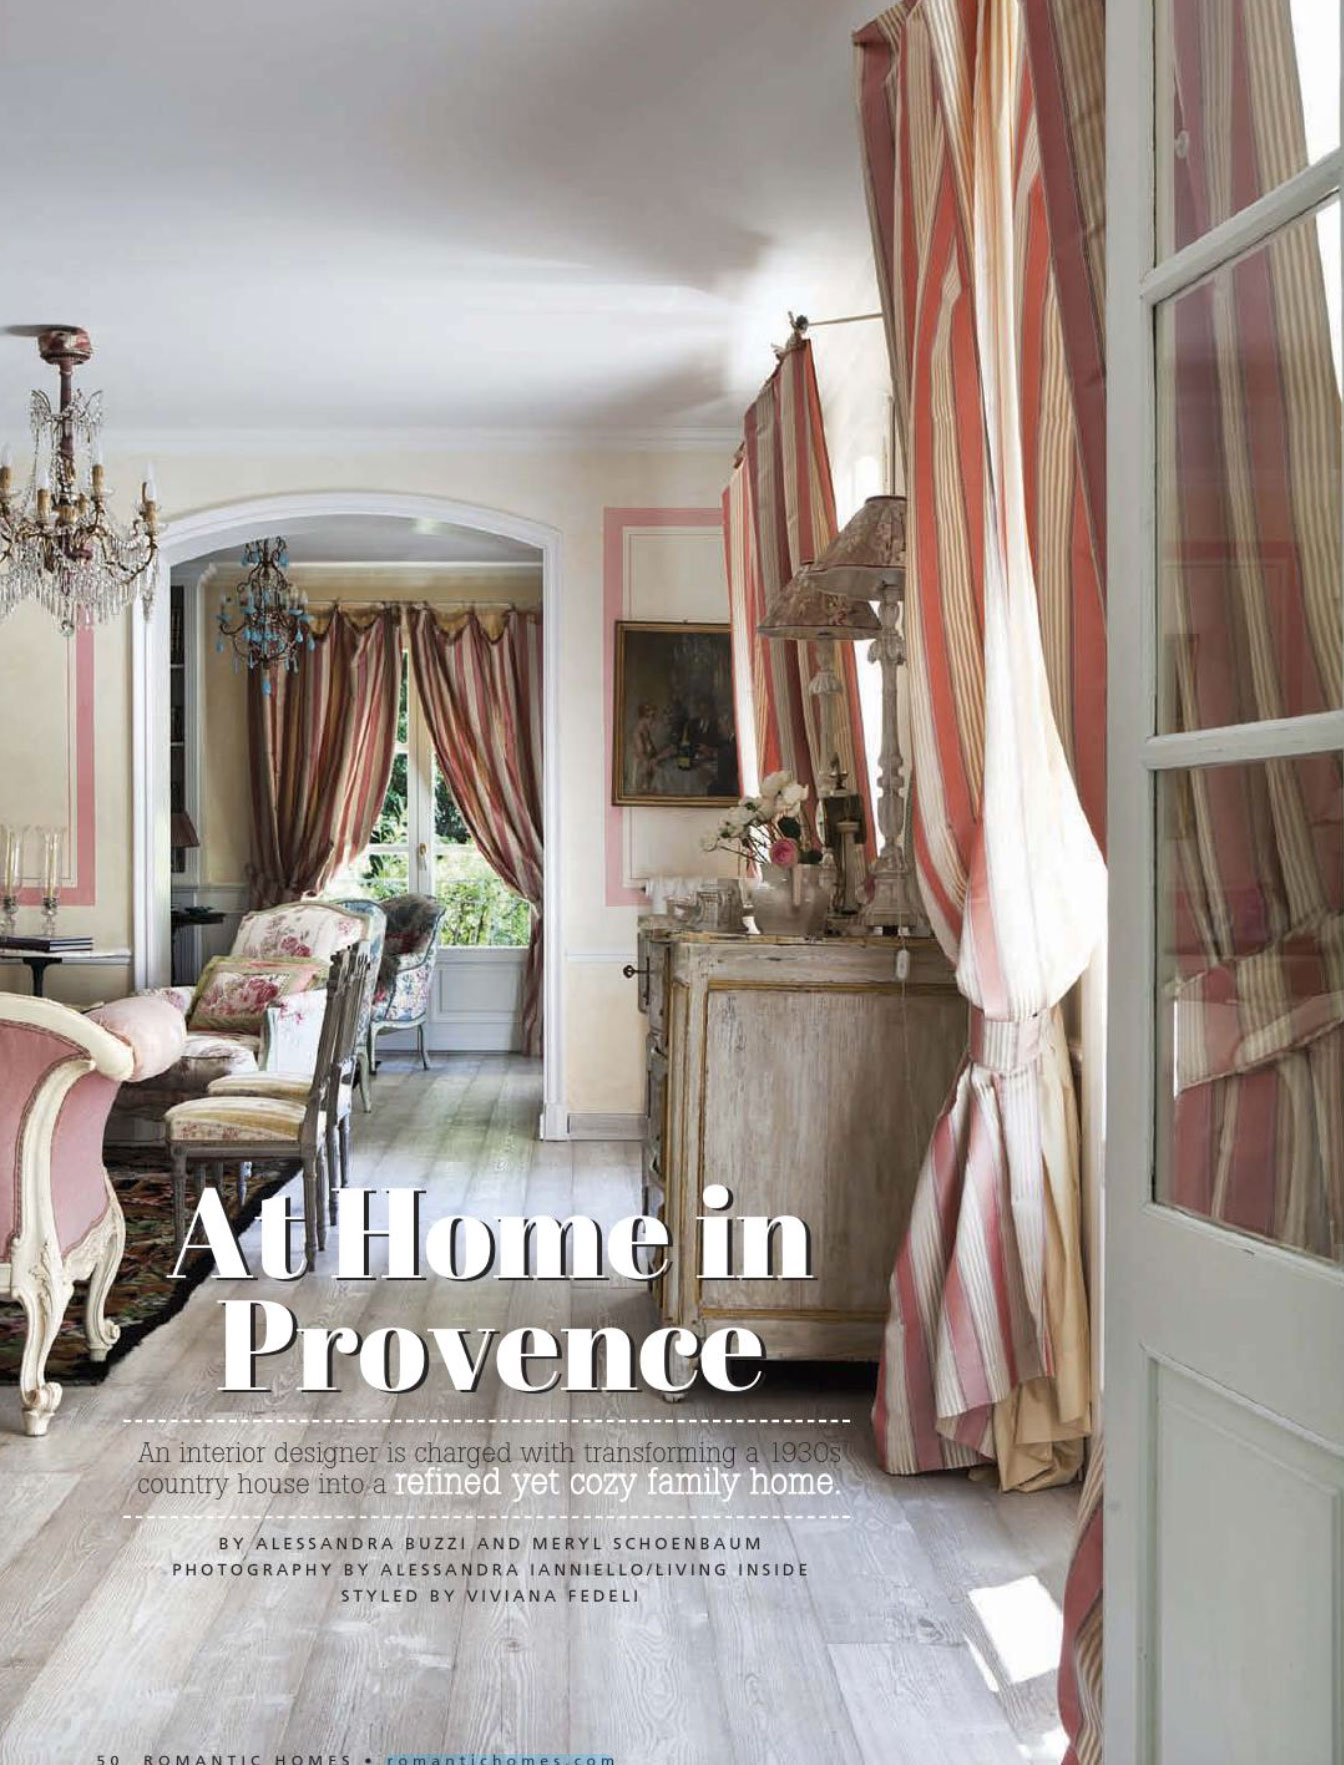 Bathroom Color Schemes At Home In Provence - Interiors By Color